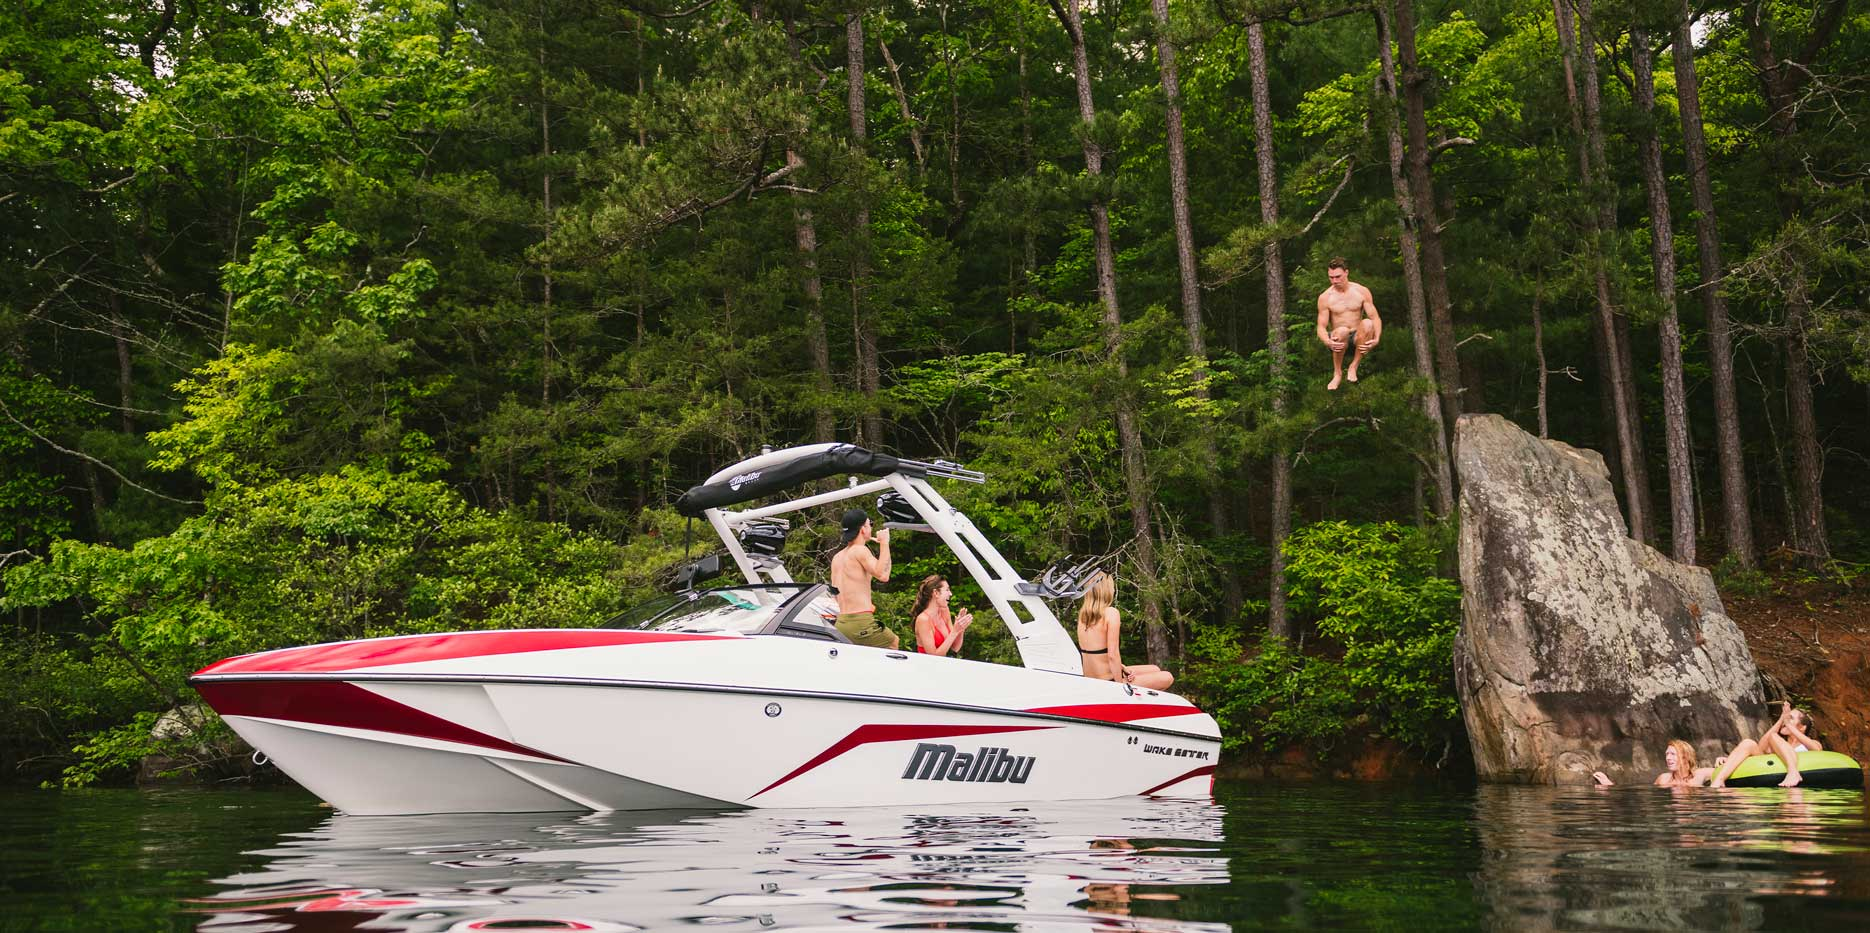 Rock jumping in the Malibu Boats 21 VLX